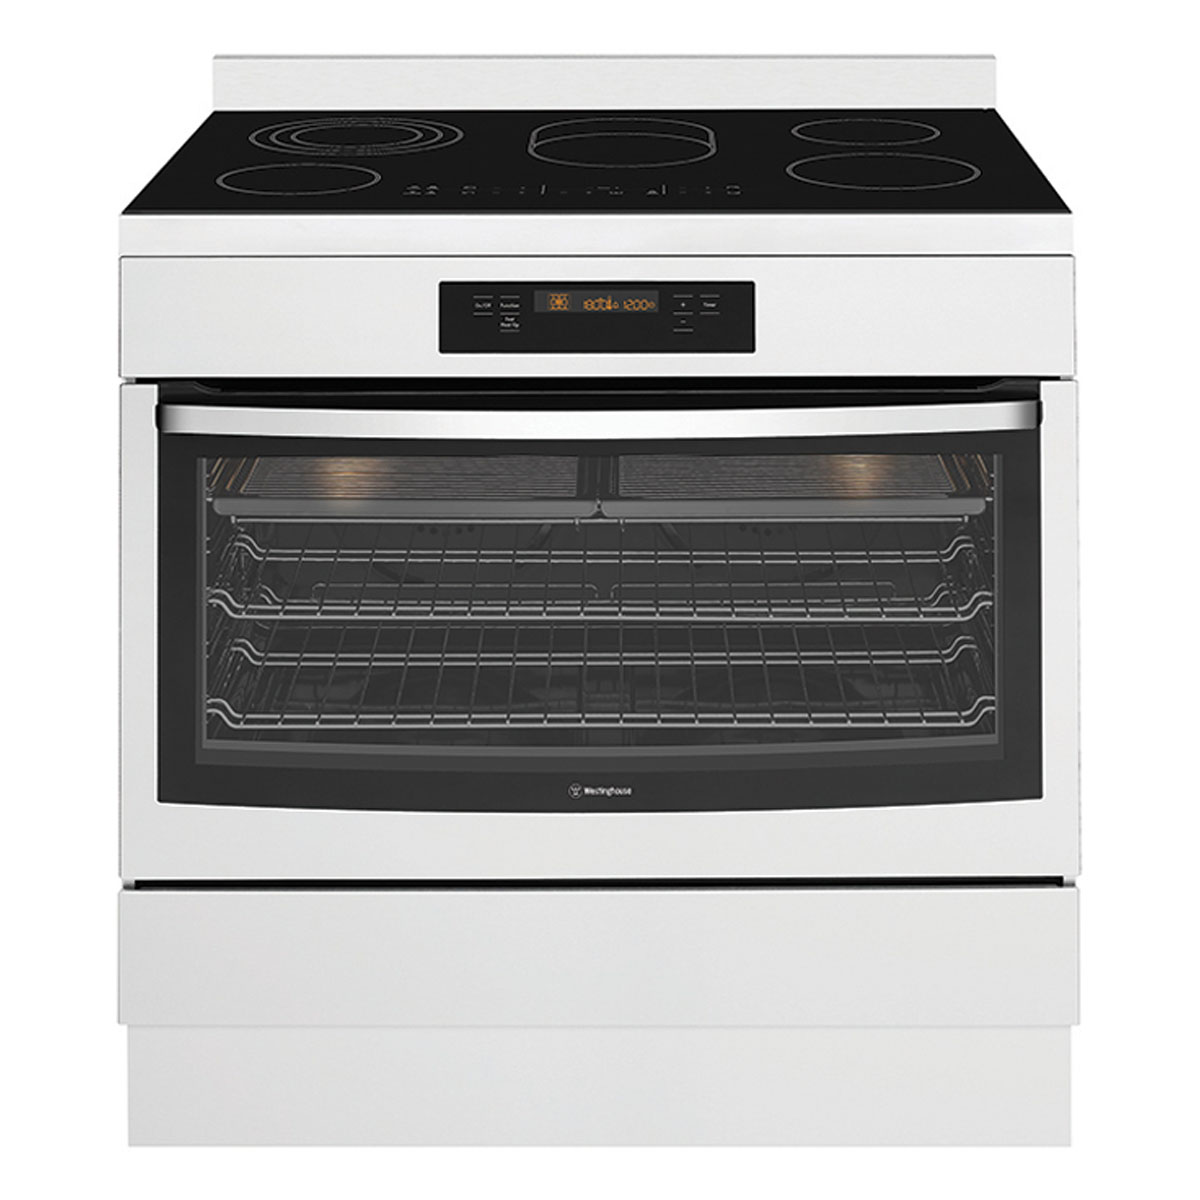 Westinghouse WFE946SB Freestanding Electric Oven/Stove